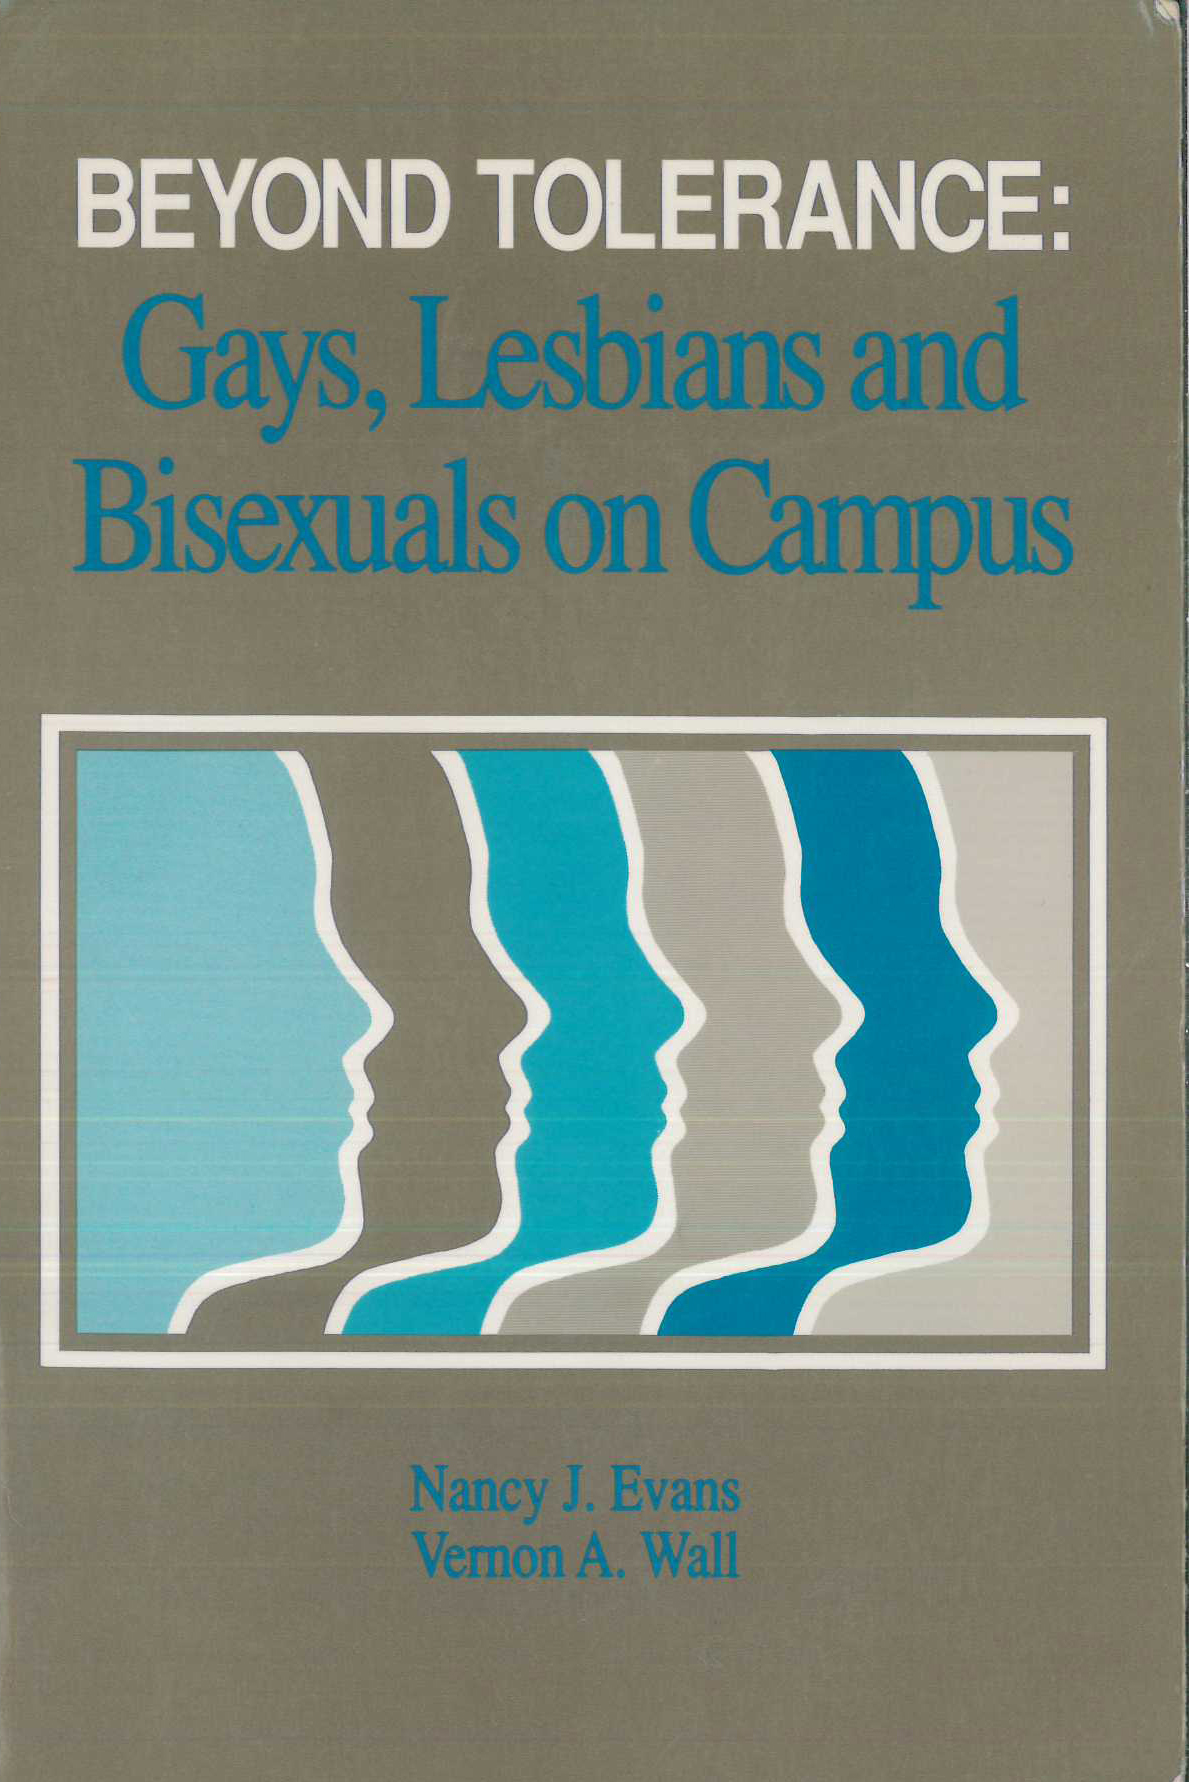 Beyond Tolerance: Gays, Lesbians and Bisexuals on Campus